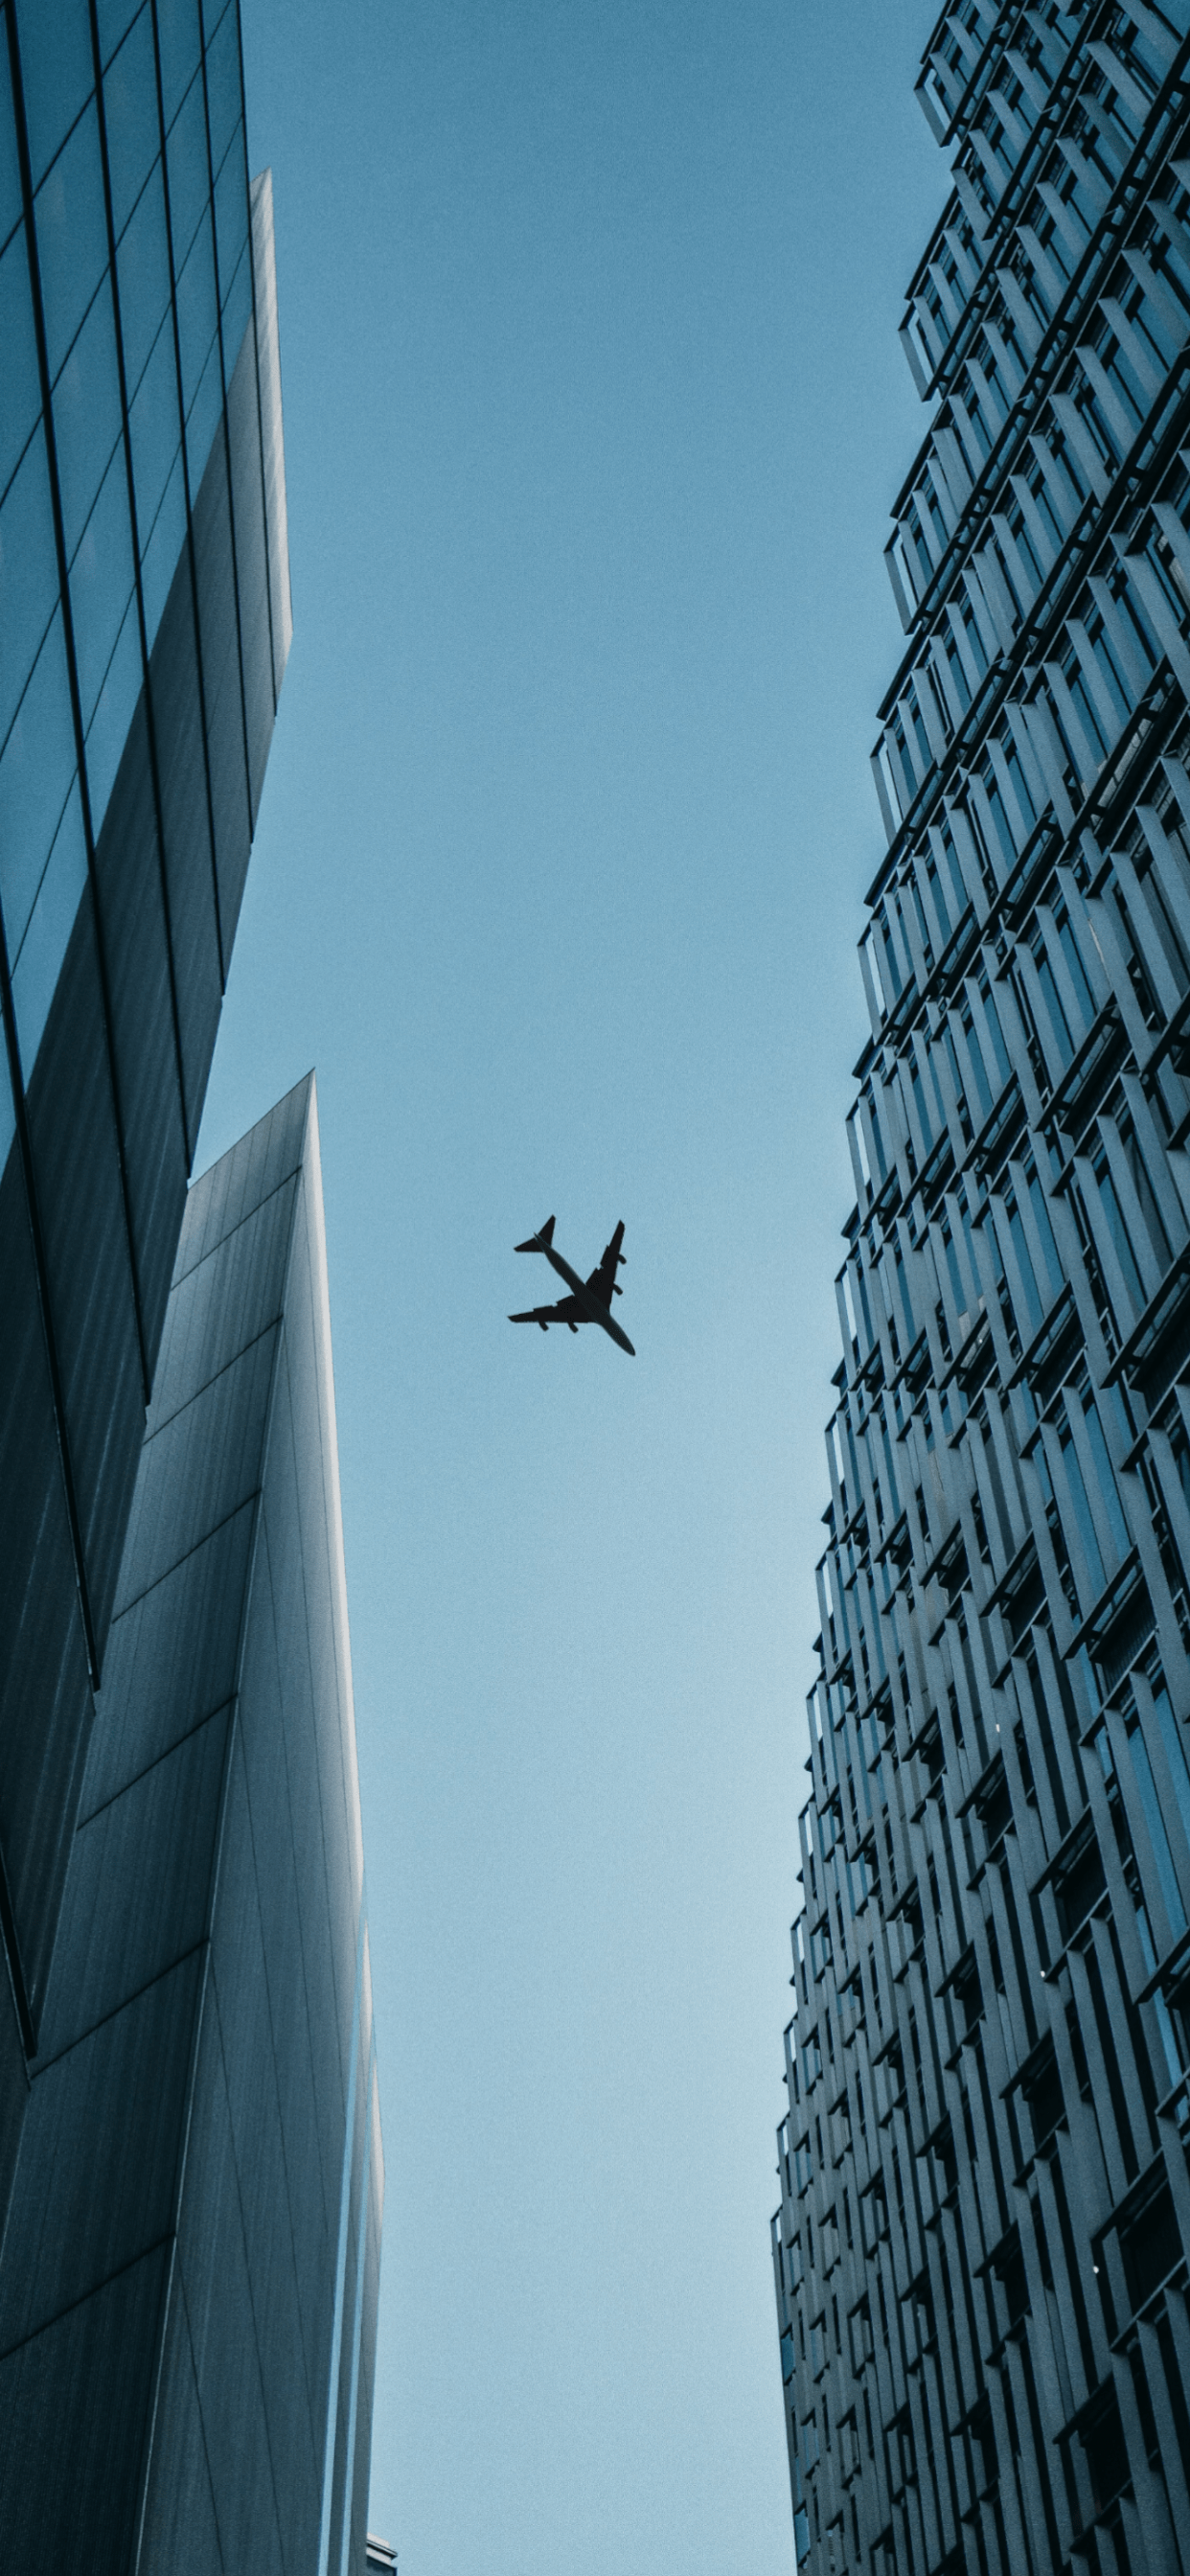 iPhone wallpapers architecture airplane london uk Architecture